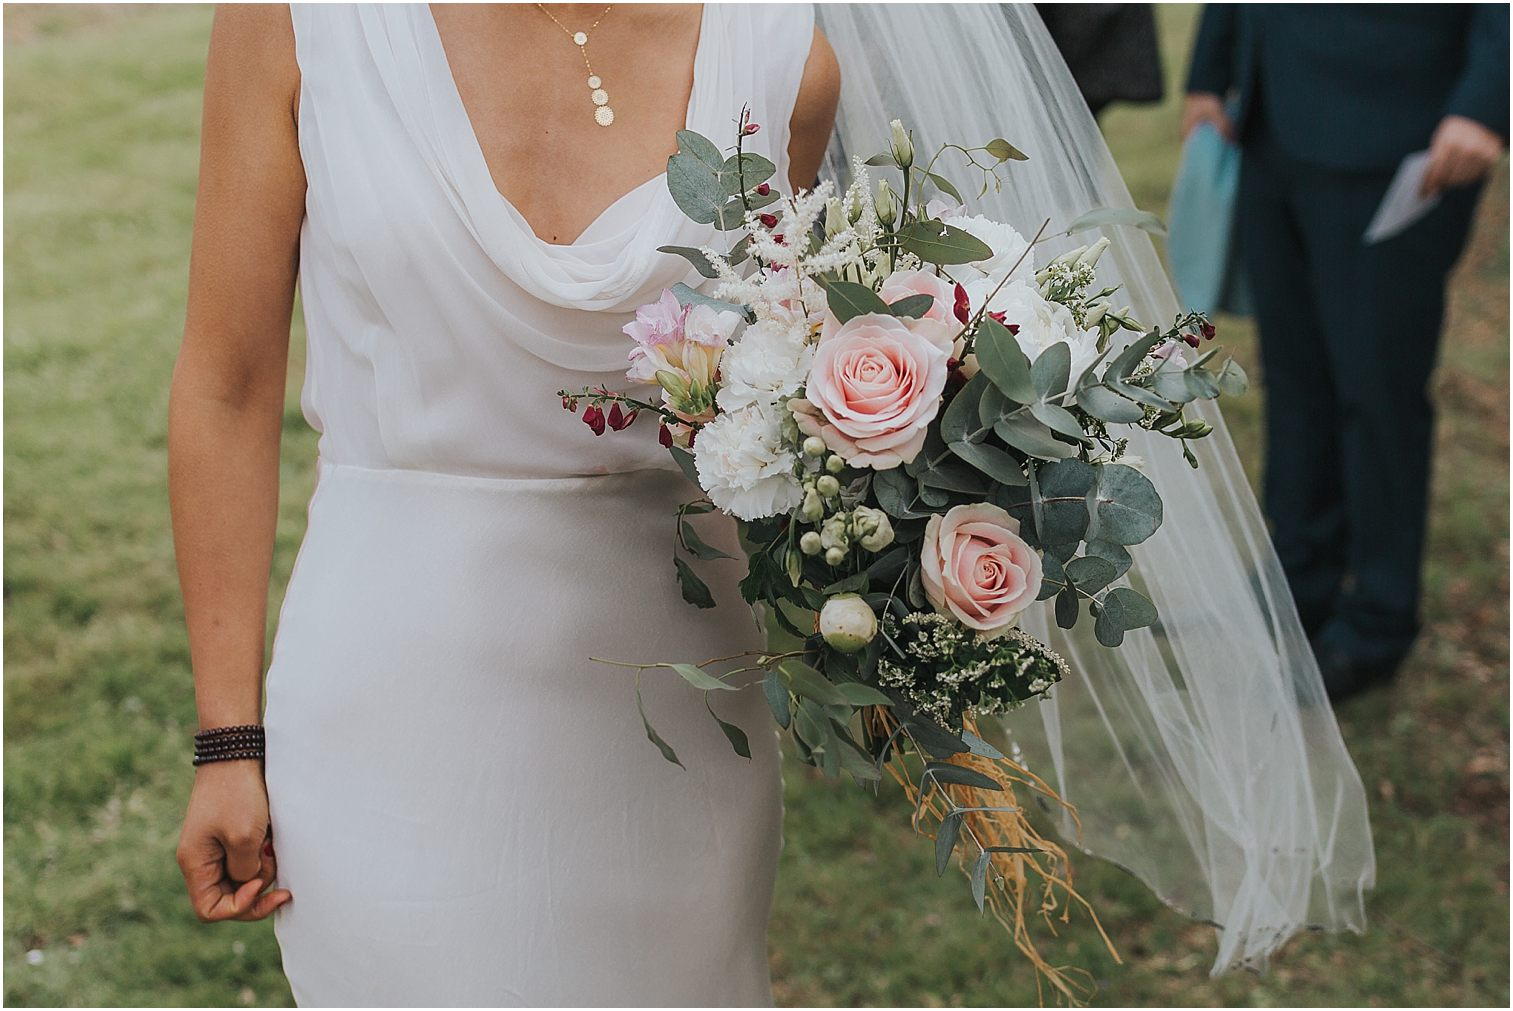 Bride holding a bouquet on her wedding day